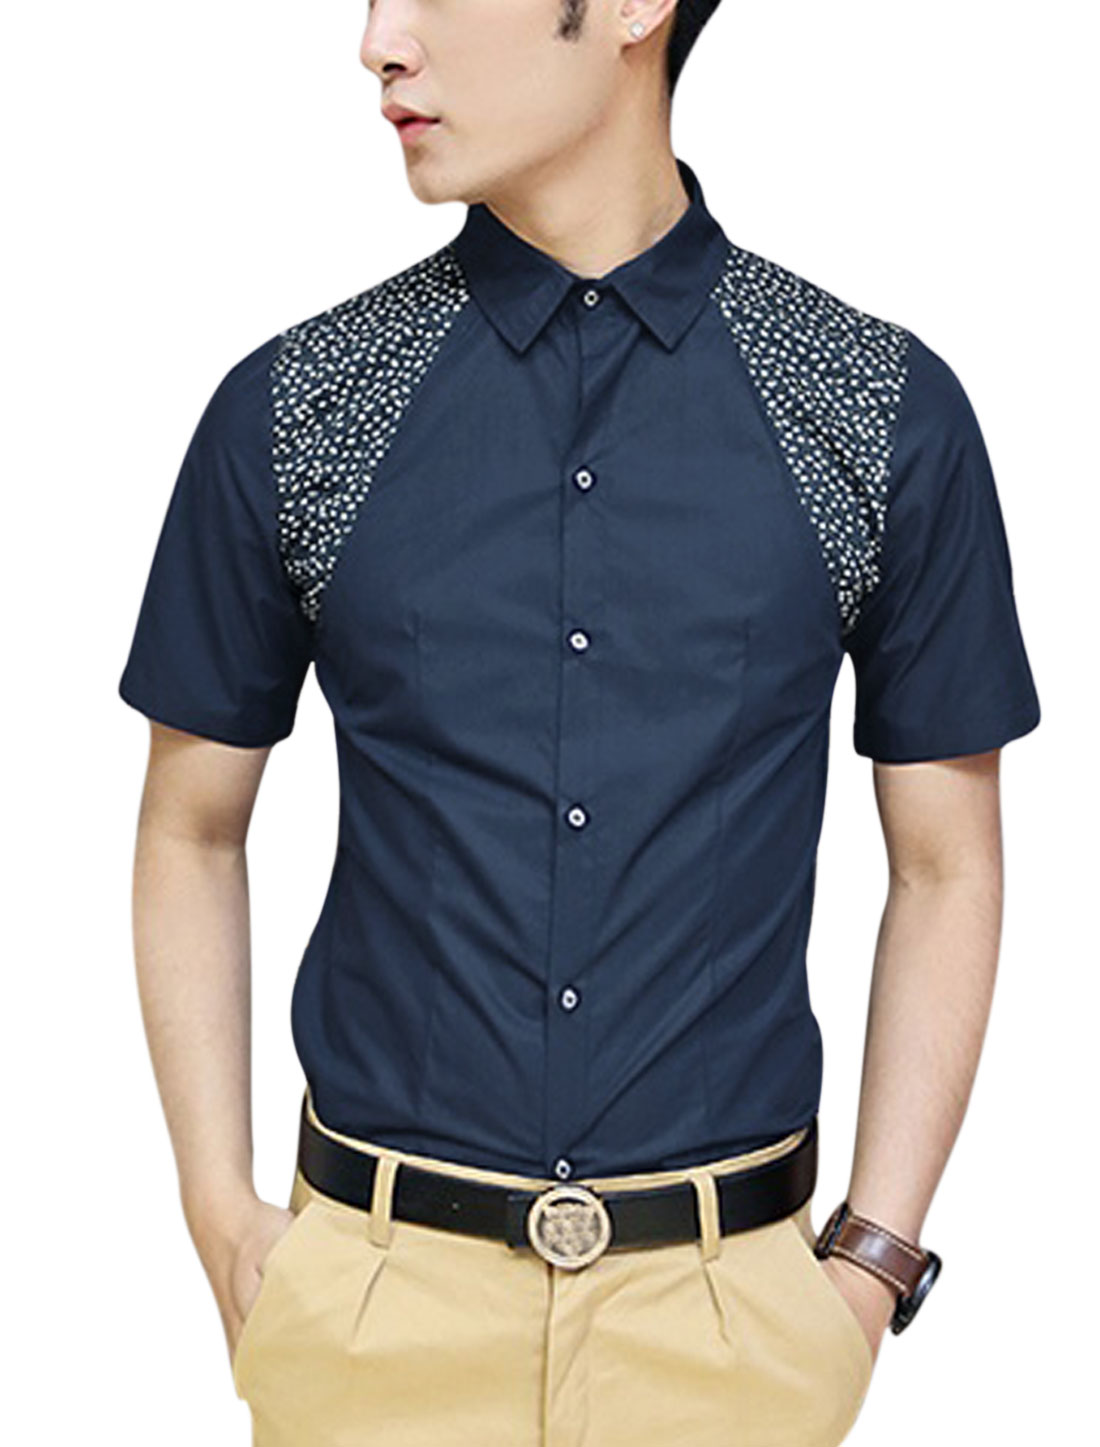 Men's Short Sleeve Round Hem Single Breasted Casual Shirt Navy Blue M